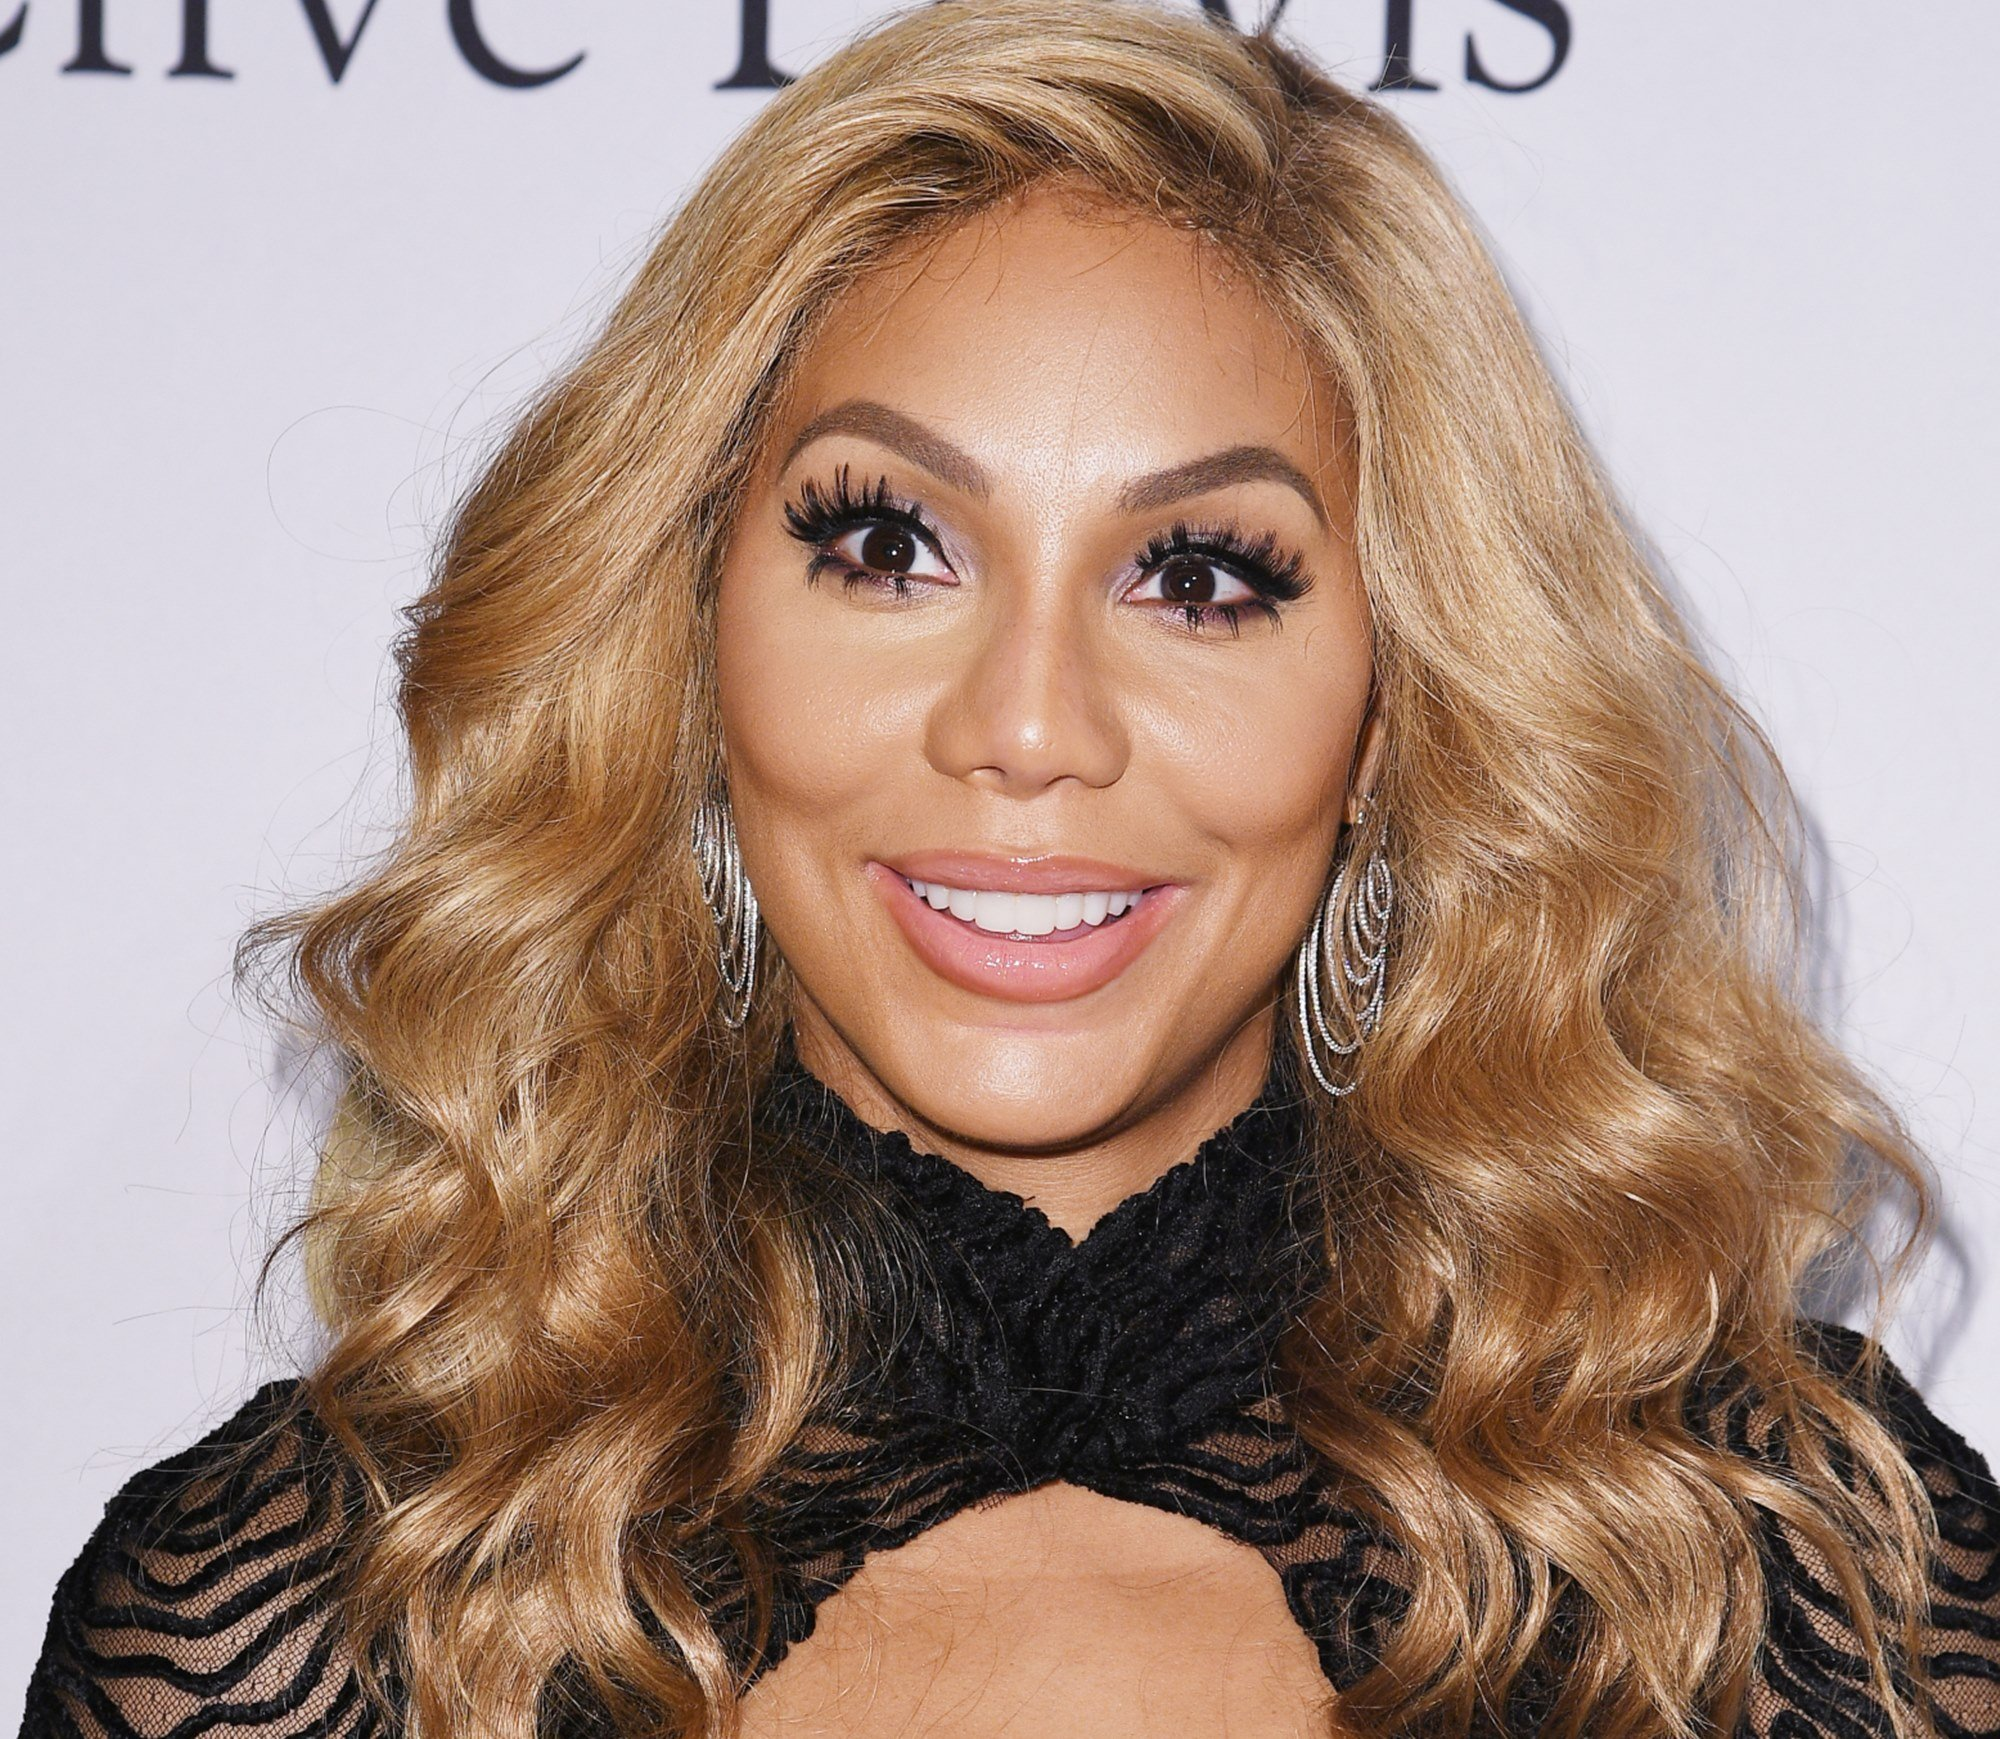 Tamar Braxton Has A New Podcast Episode Out – Hear It Here